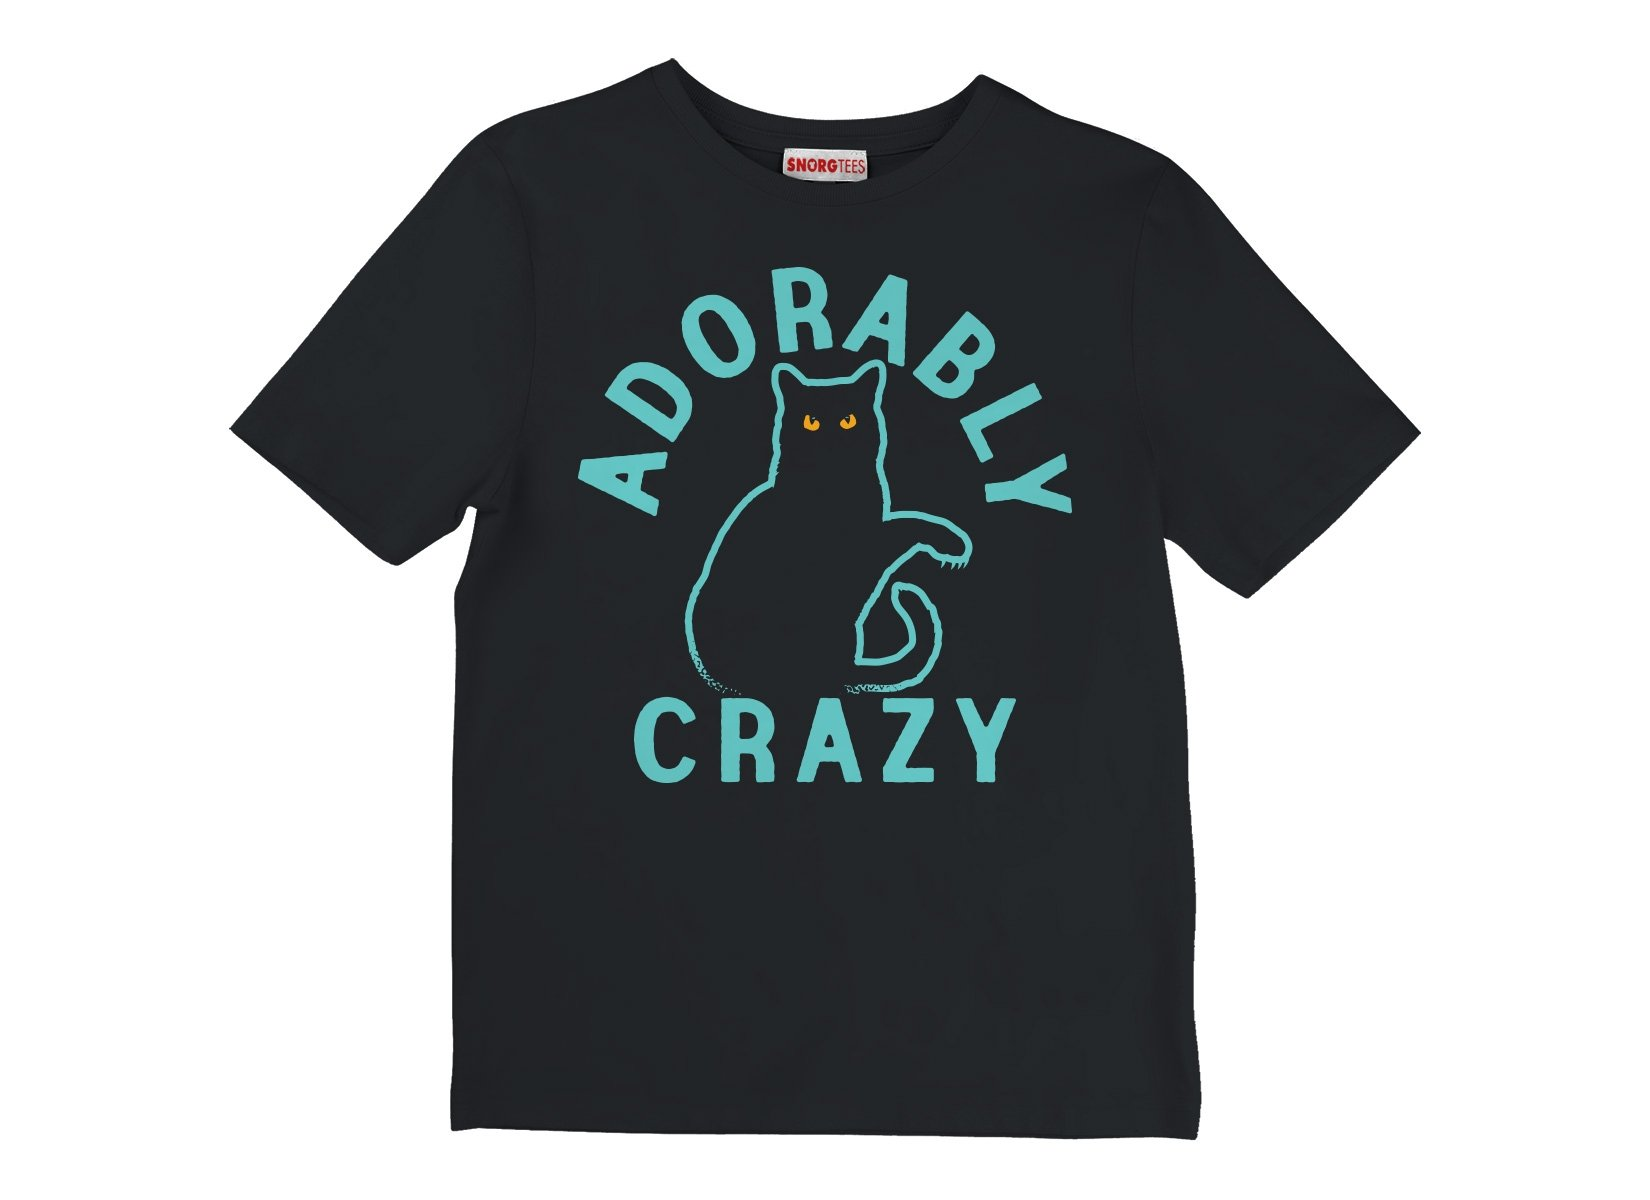 Adorably Crazy on Kids T-Shirt